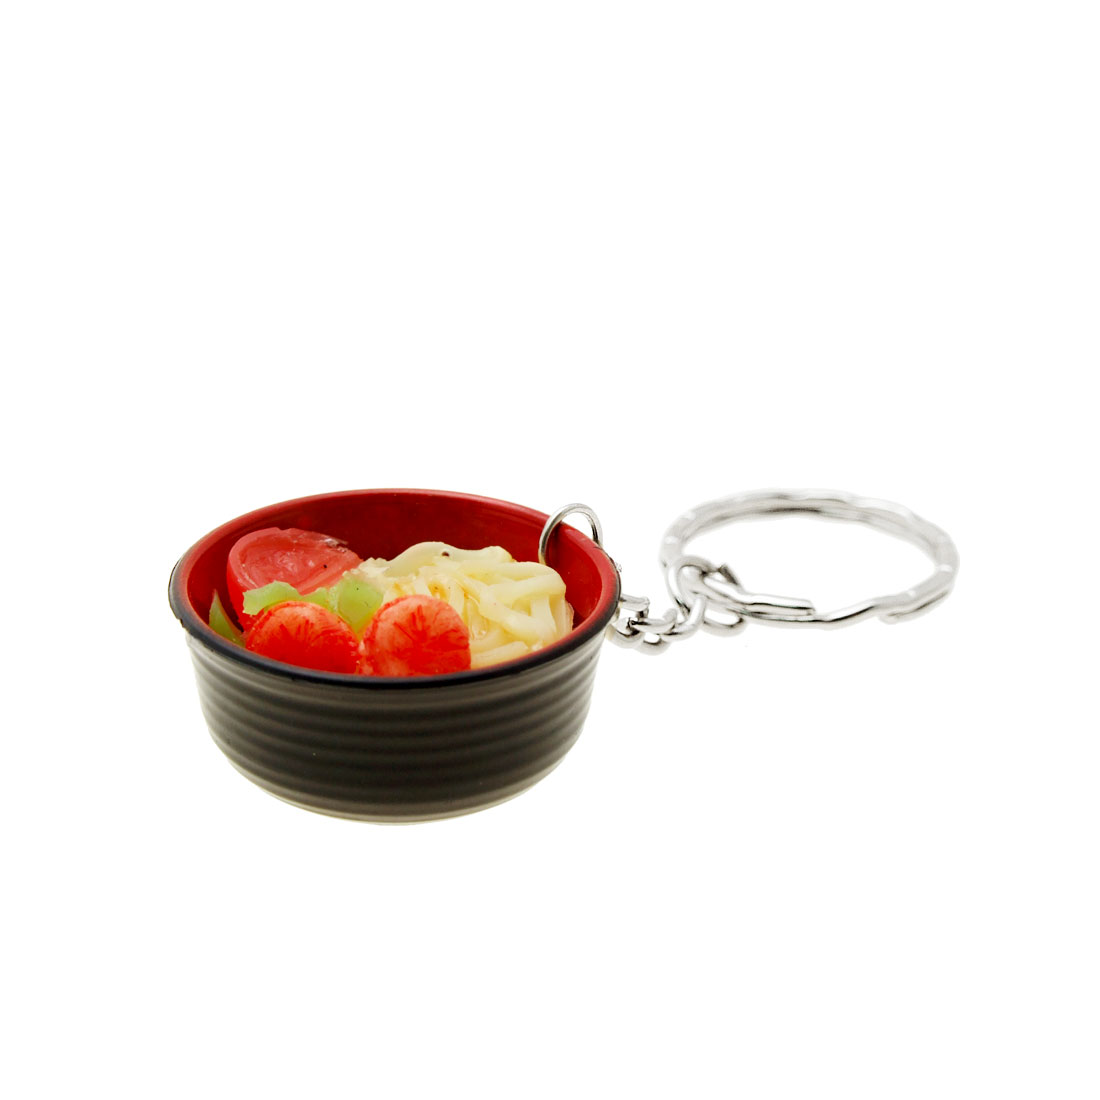 Fashionable Cute Mini Black Bowl Pendant Noodle Food Key Chain